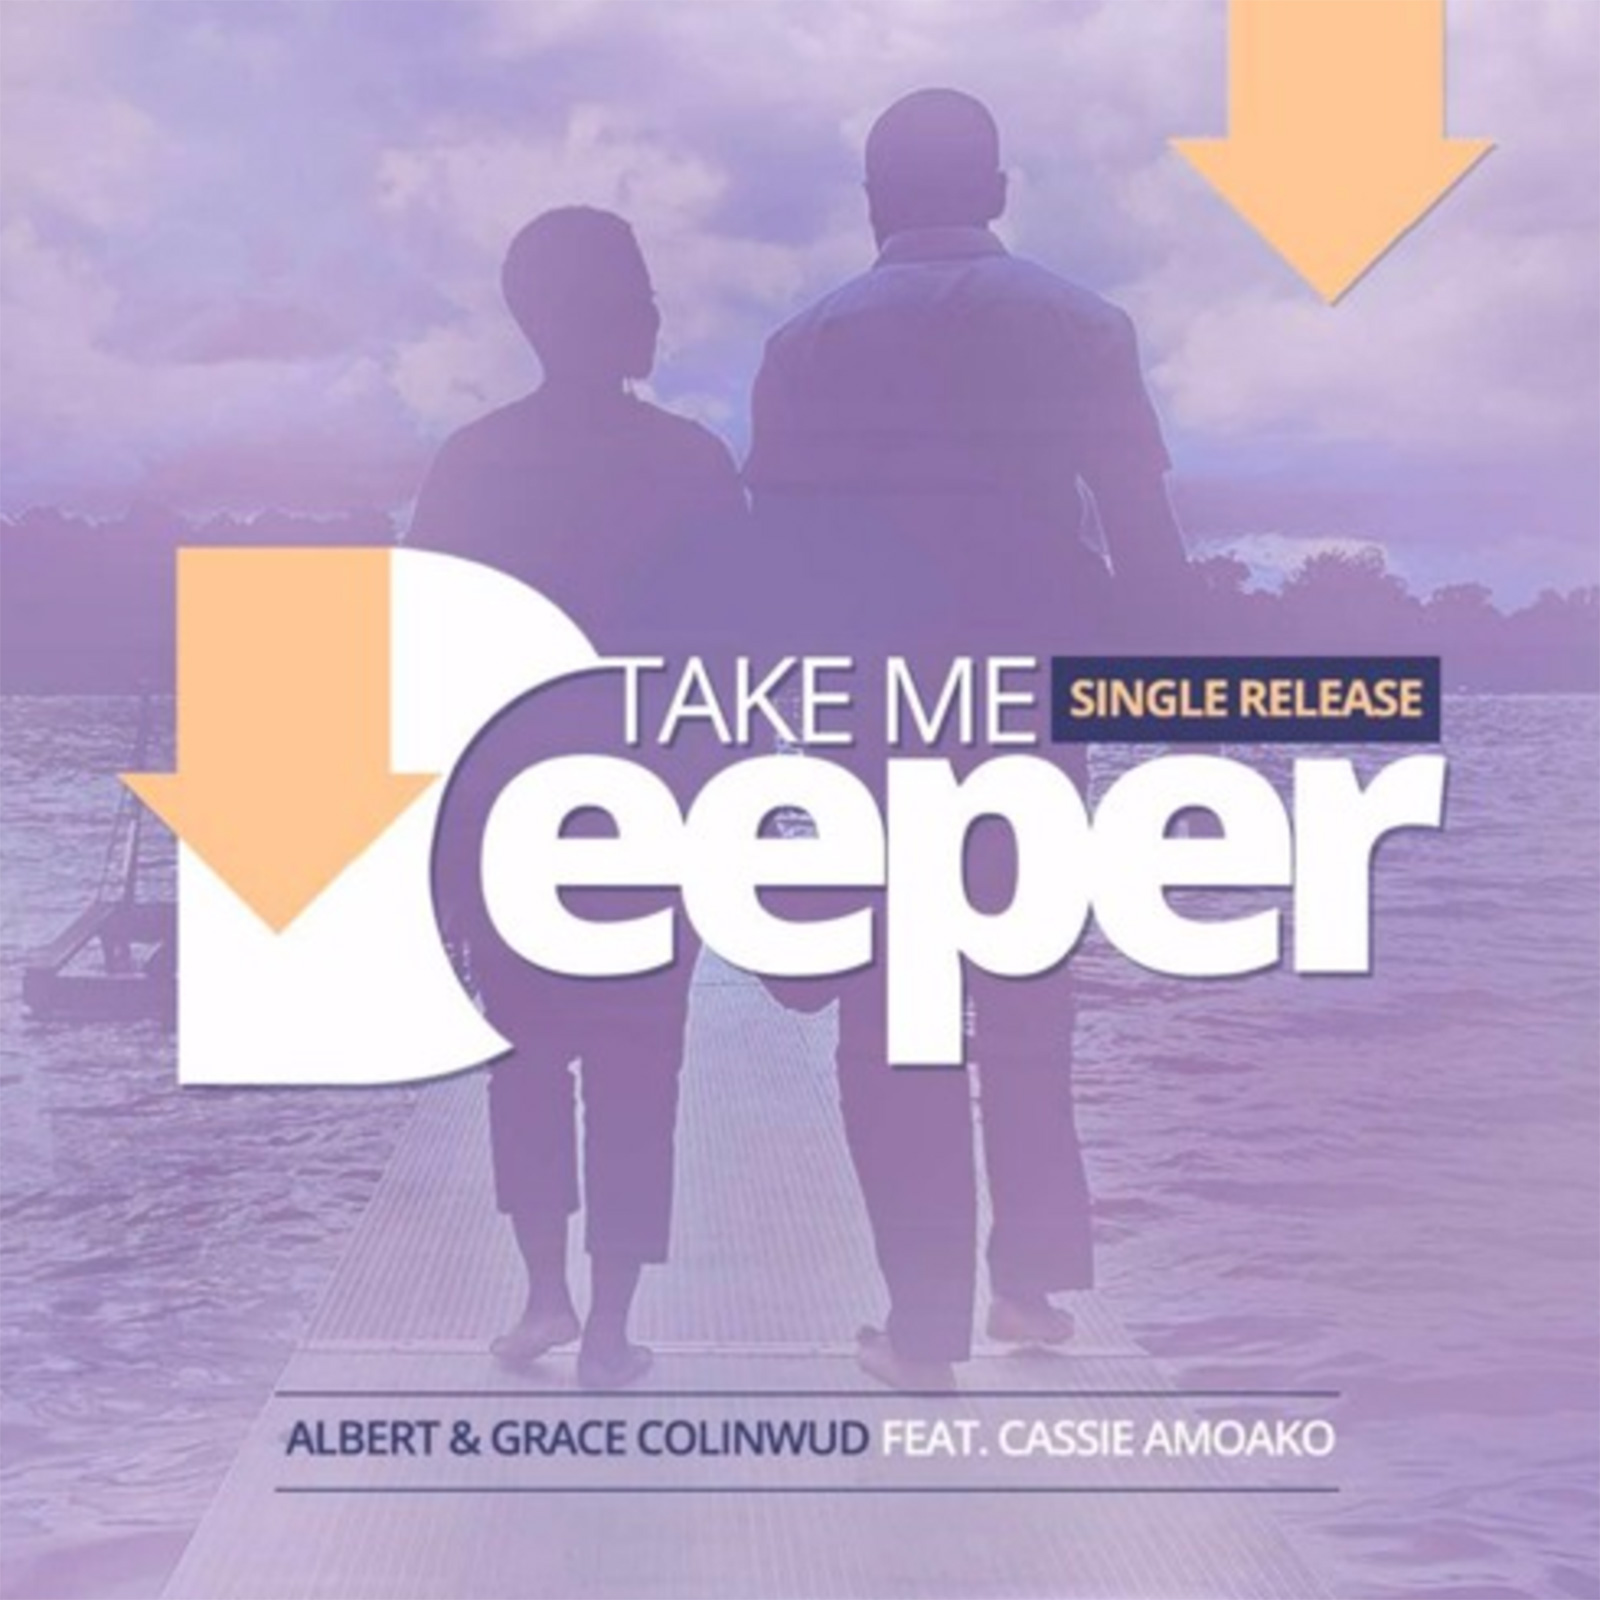 Take Me Deeper by Albert & Grace Colinwud feat. Cassie Amoako